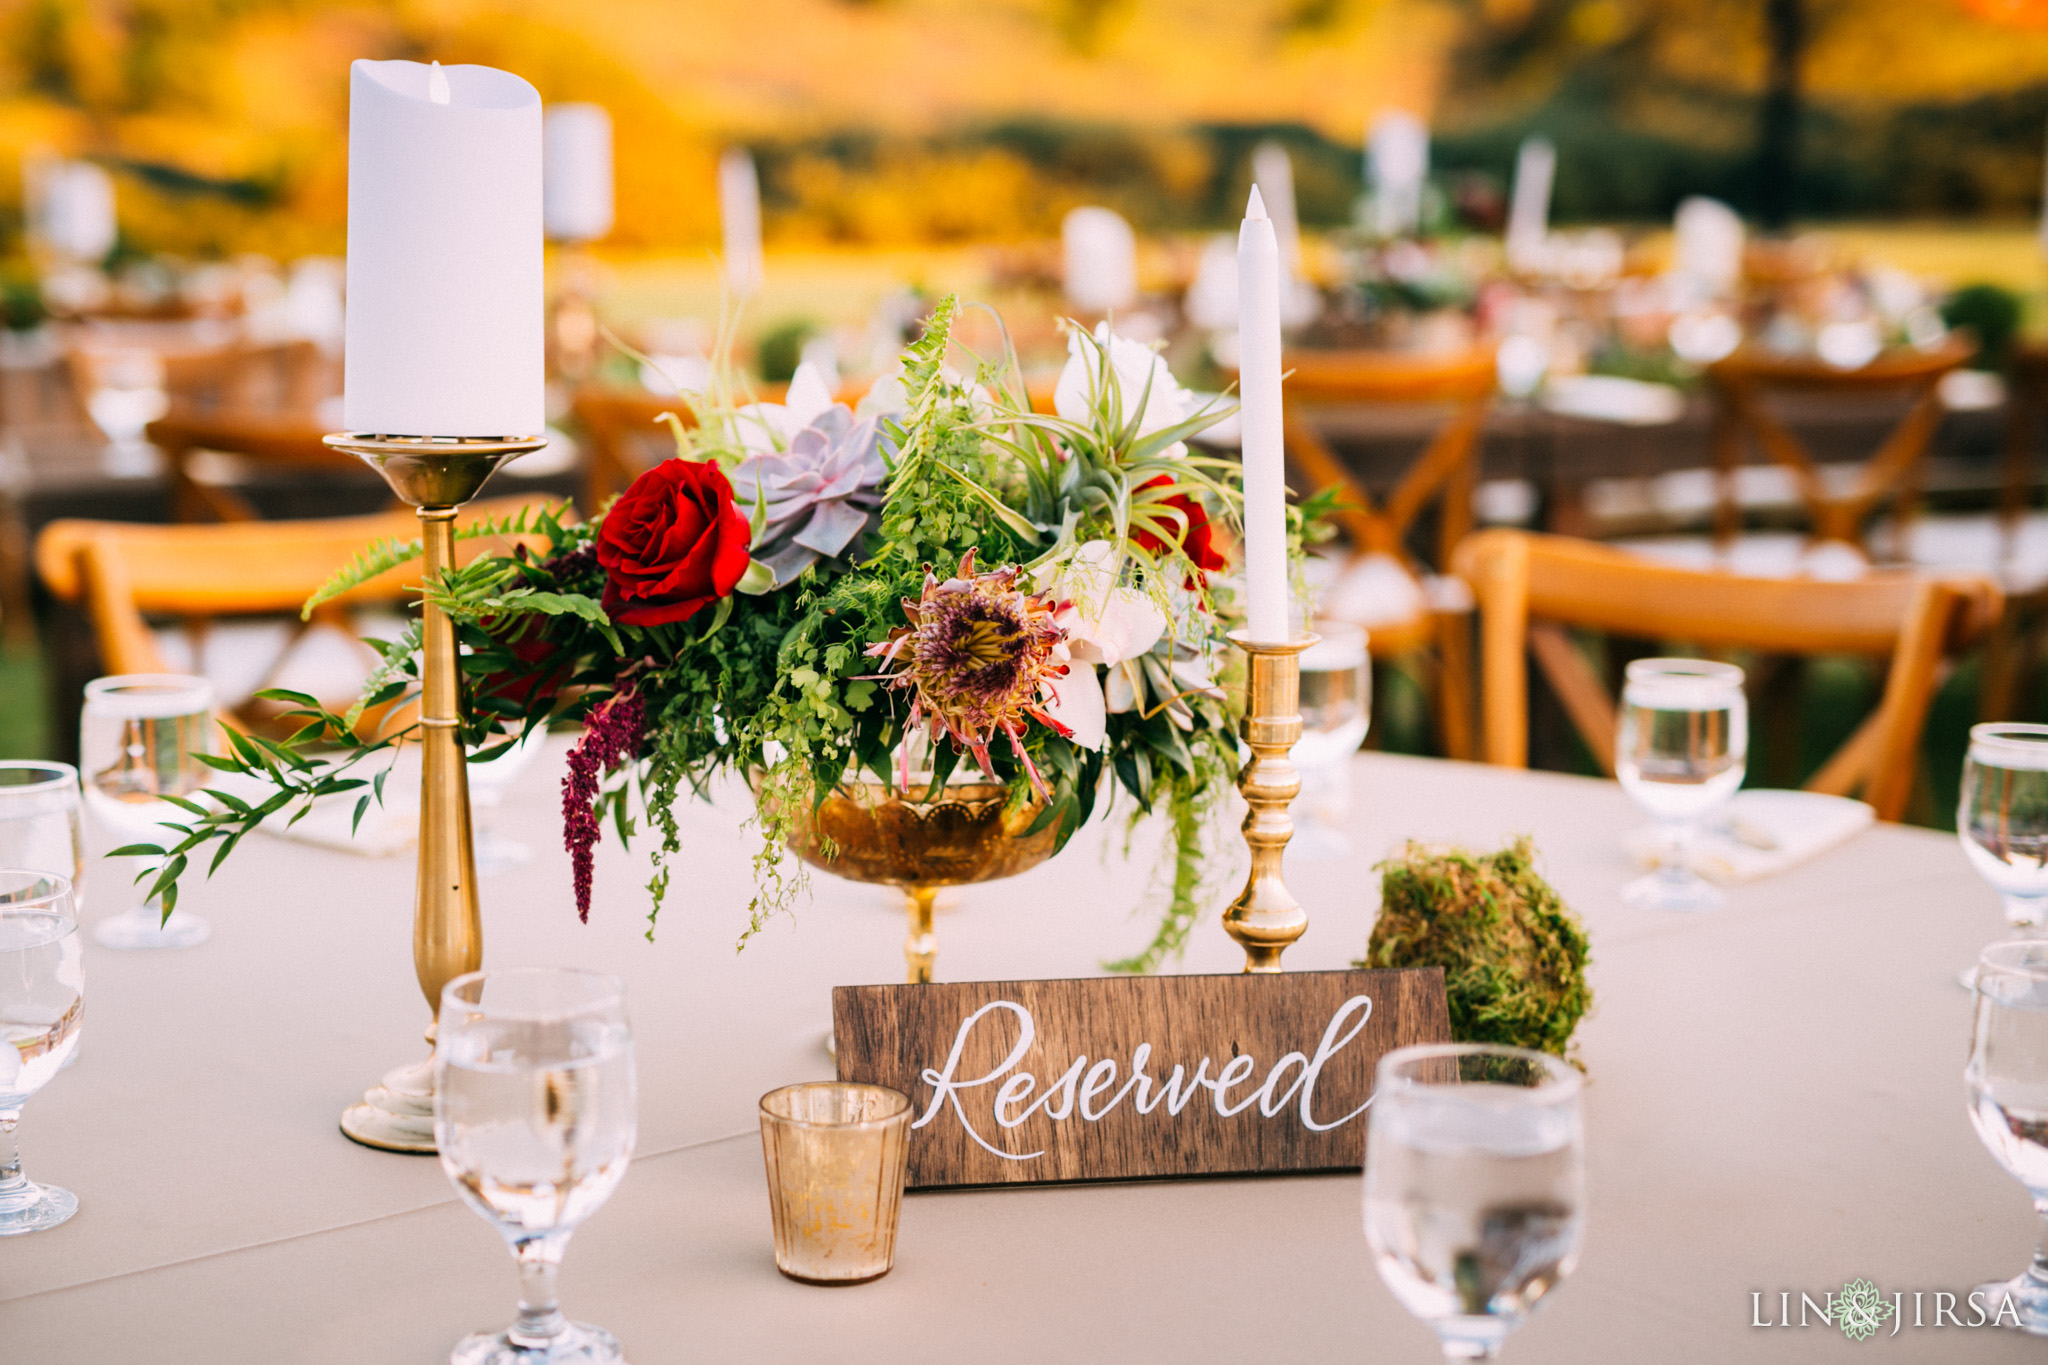 ethereal open air resort wedding reception table setting details reserved